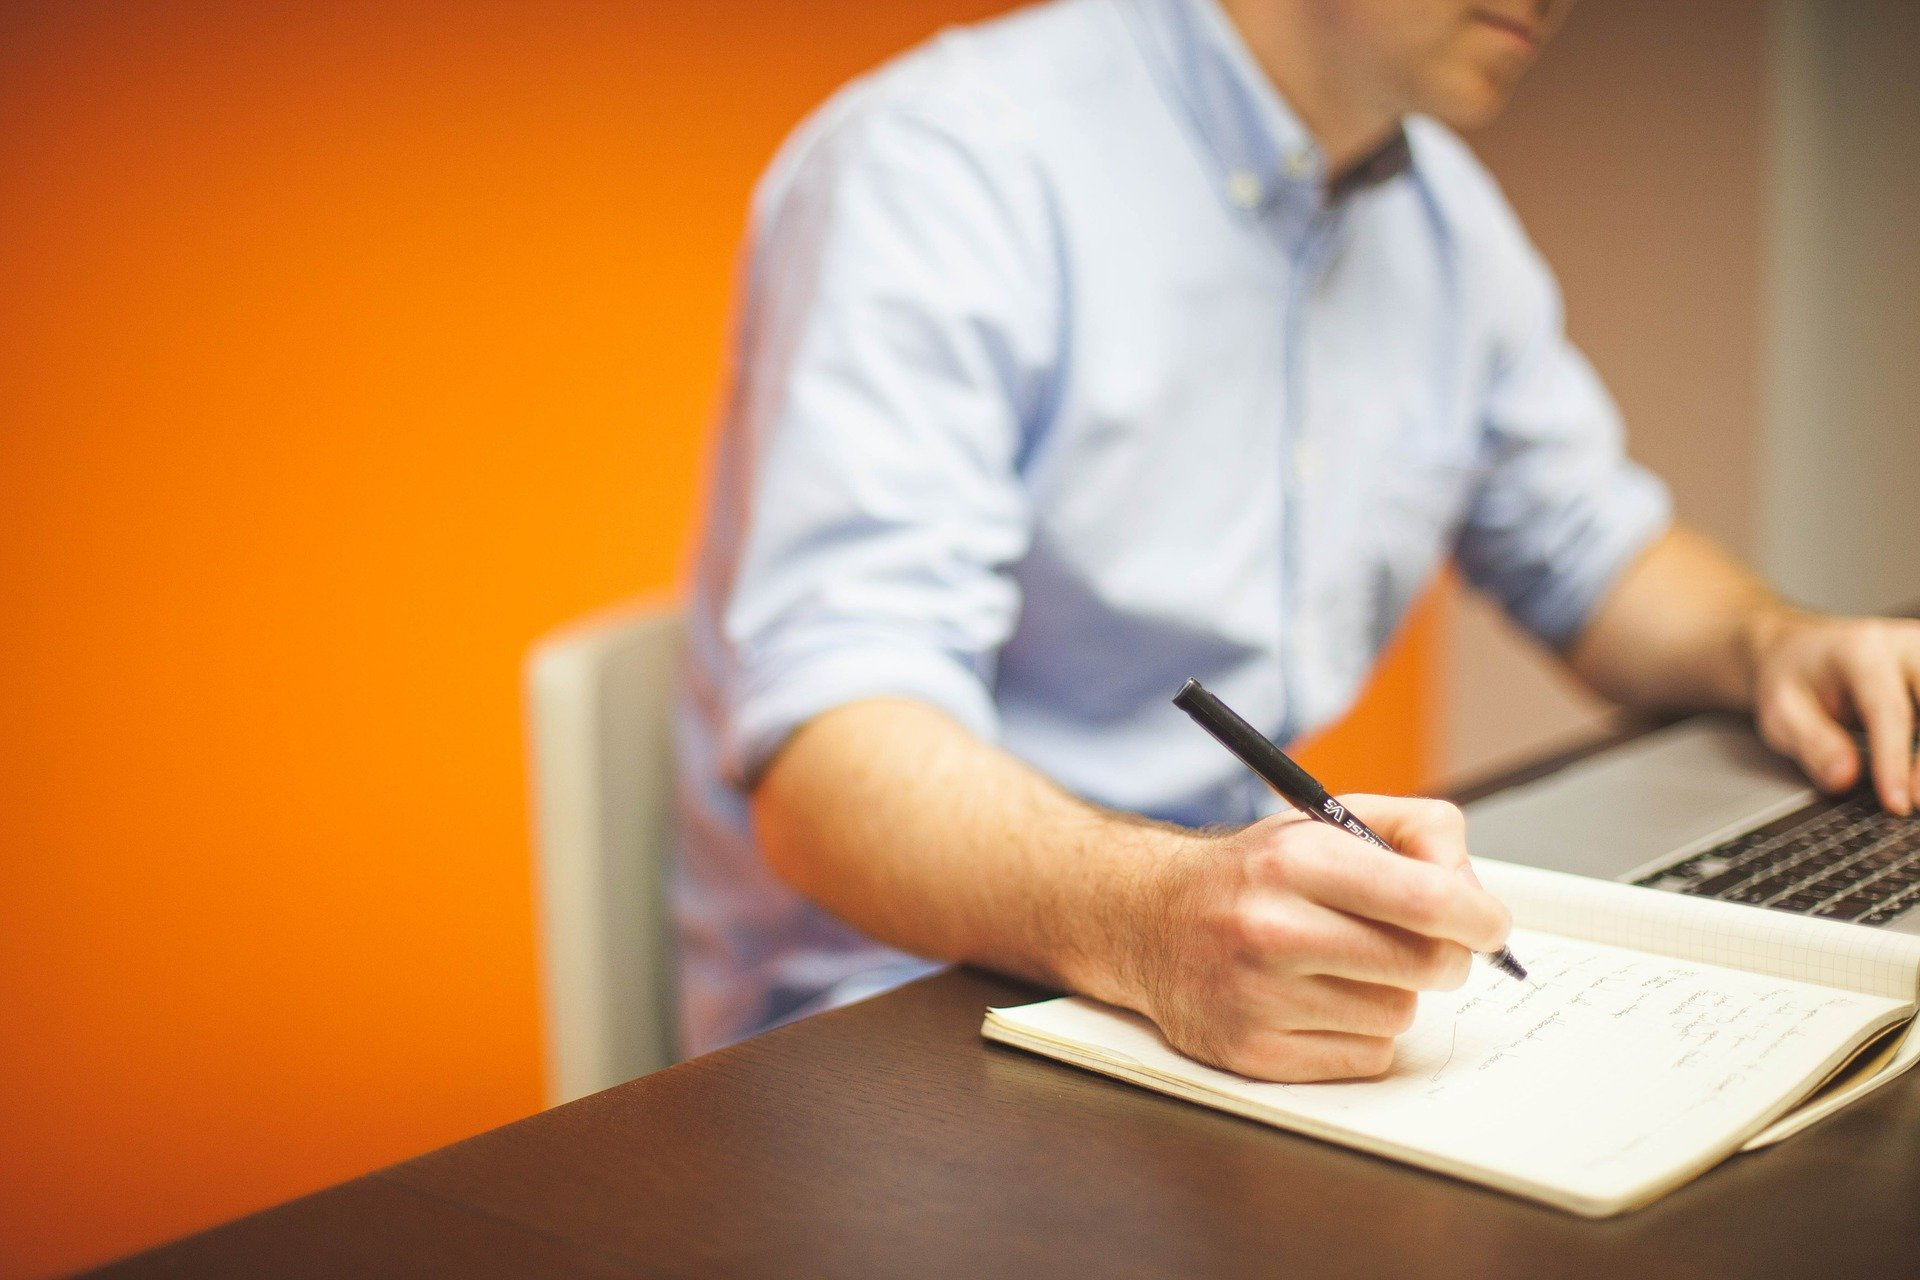 A worker working at a desk with a pad and pen.